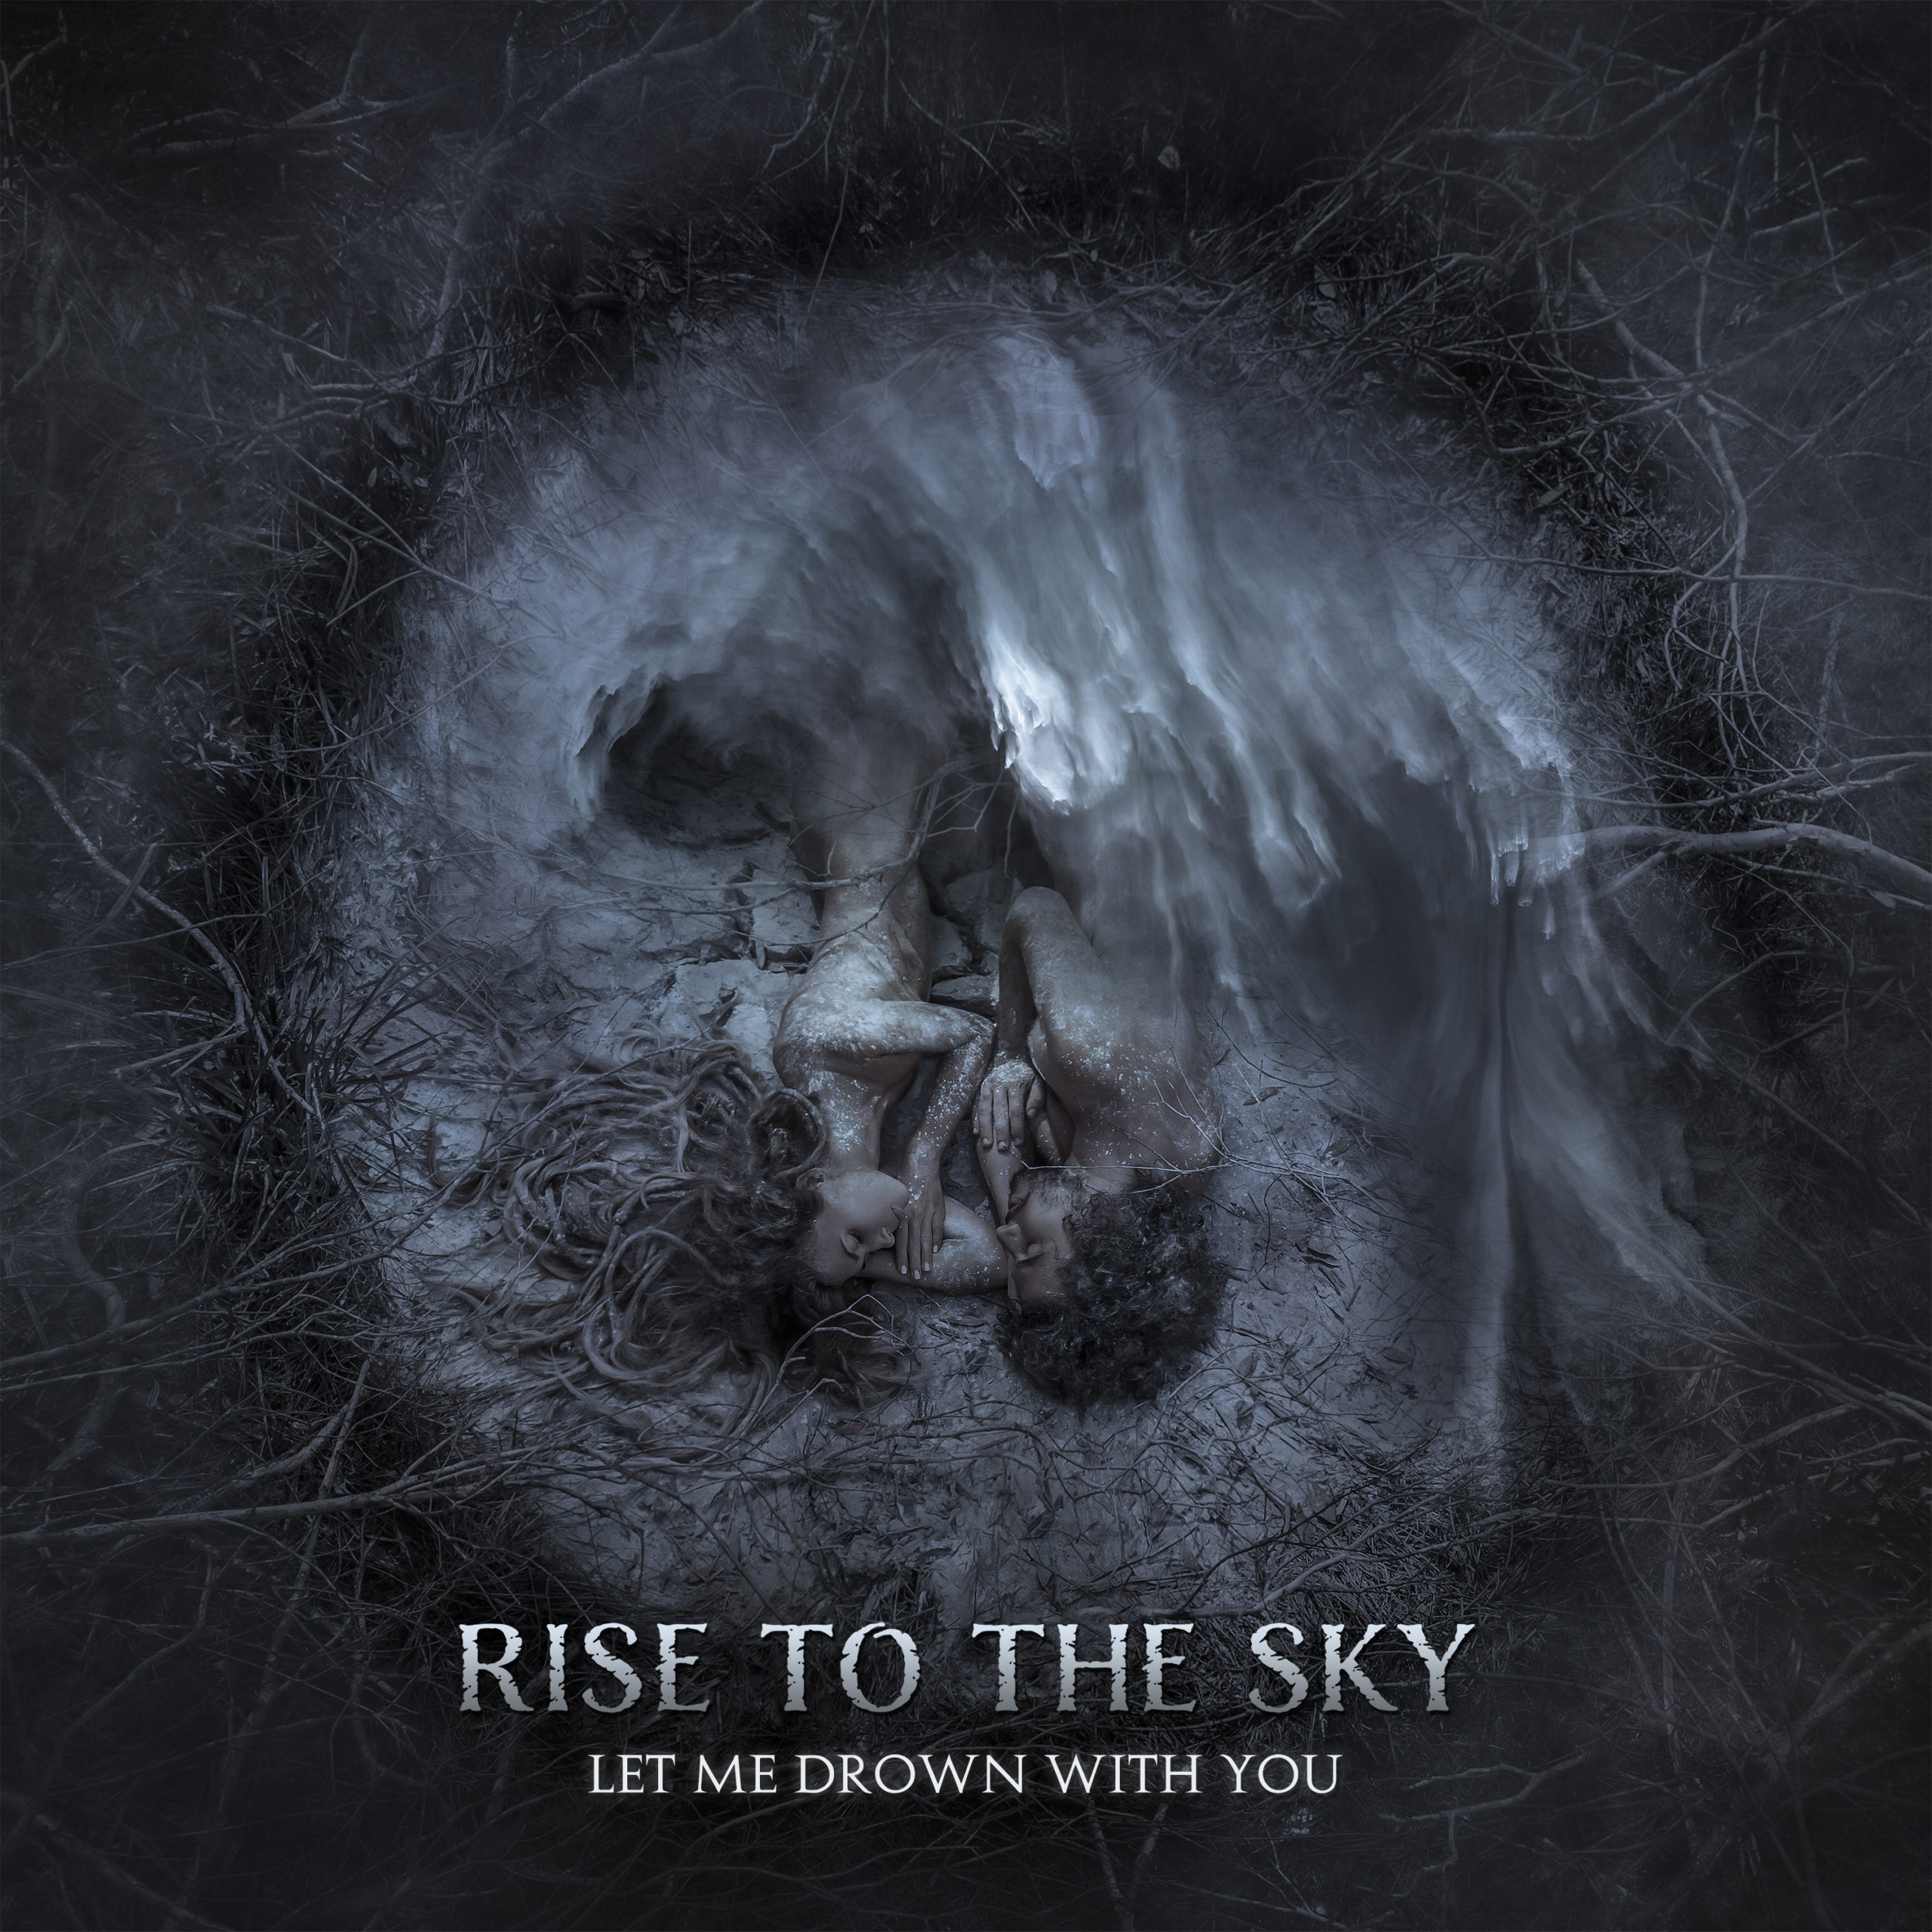 rise to the sky let me drown with you